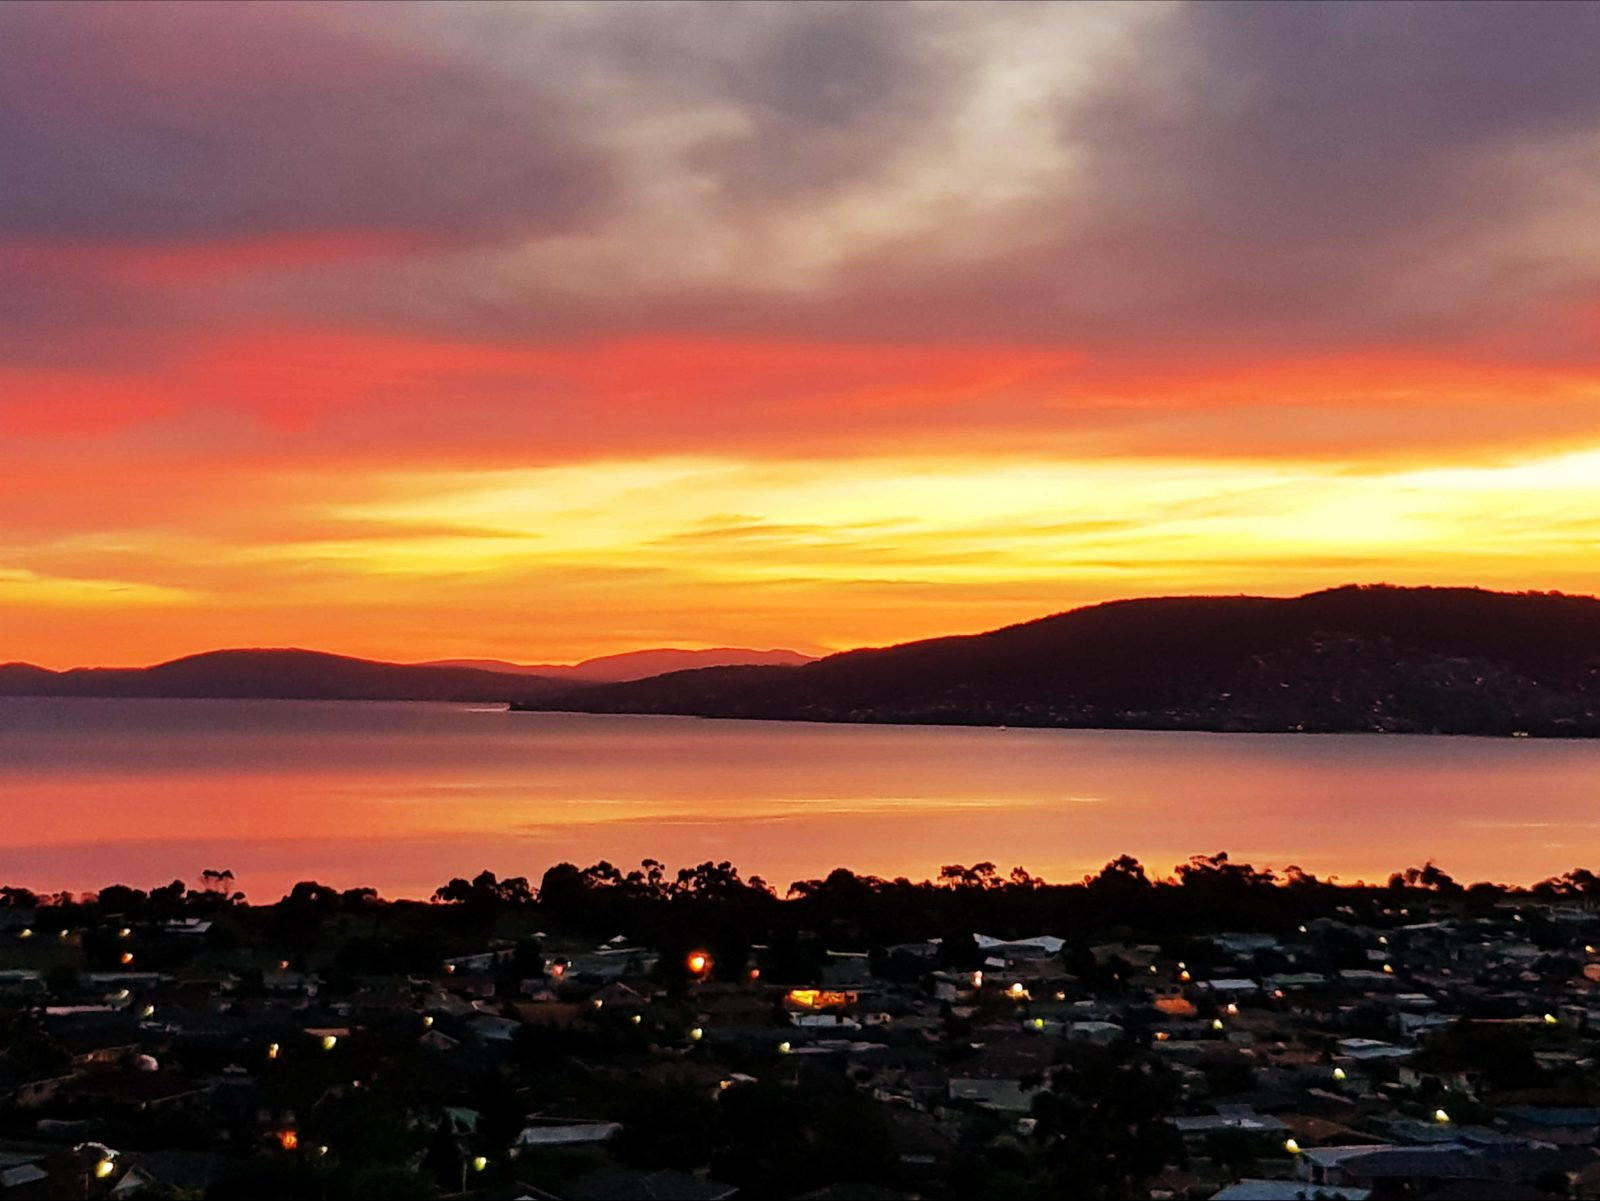 Pure mgic as the sun sets over Hobart as seen from Charbella's.